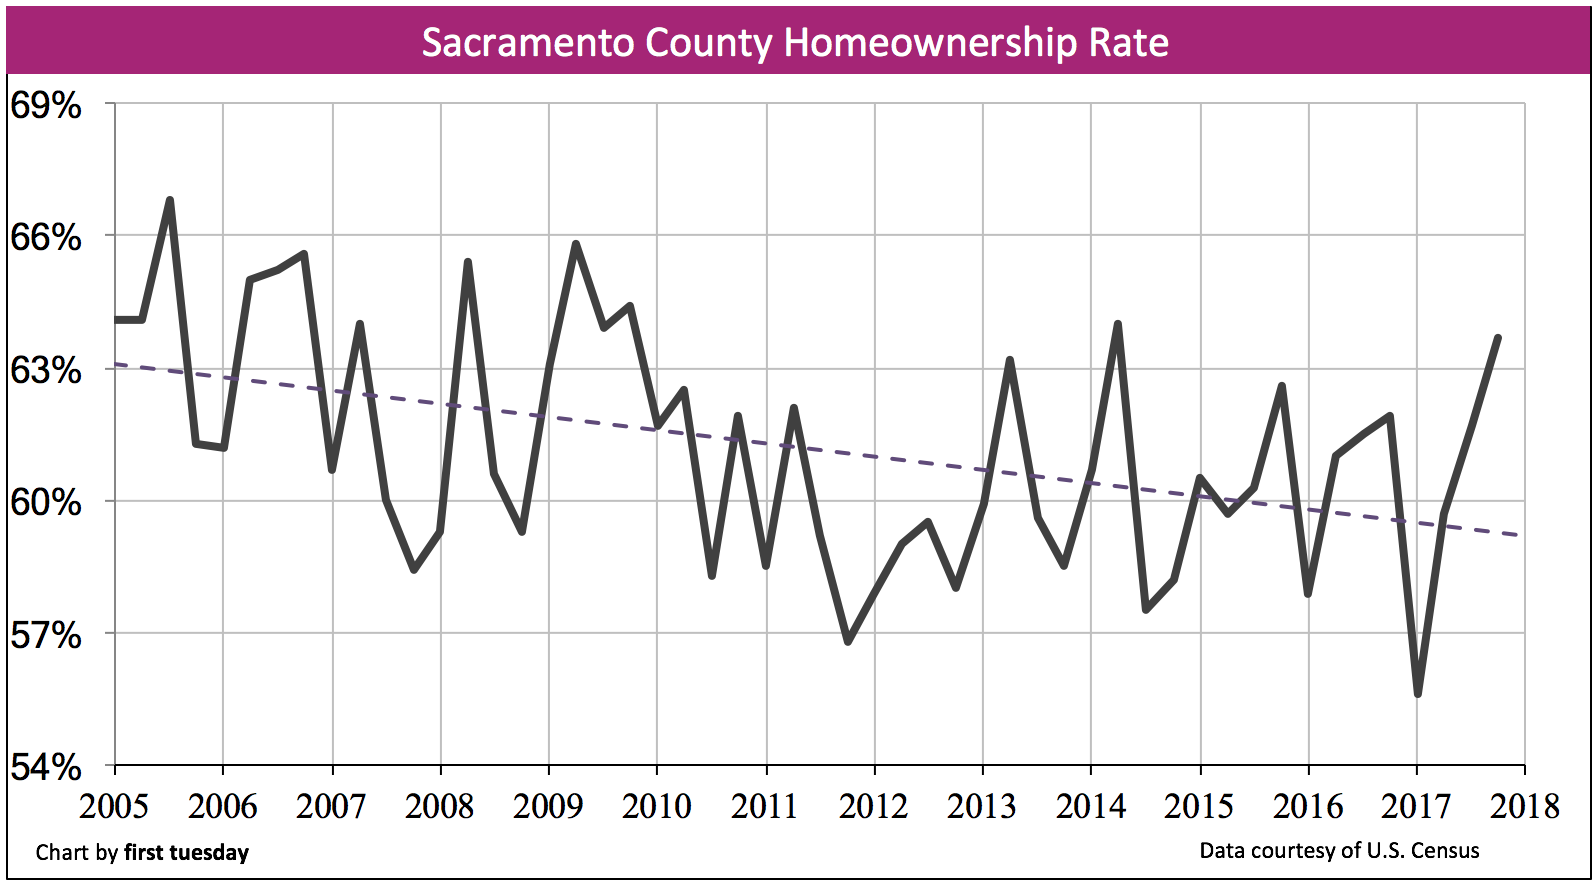 Sacramento homeownership rate